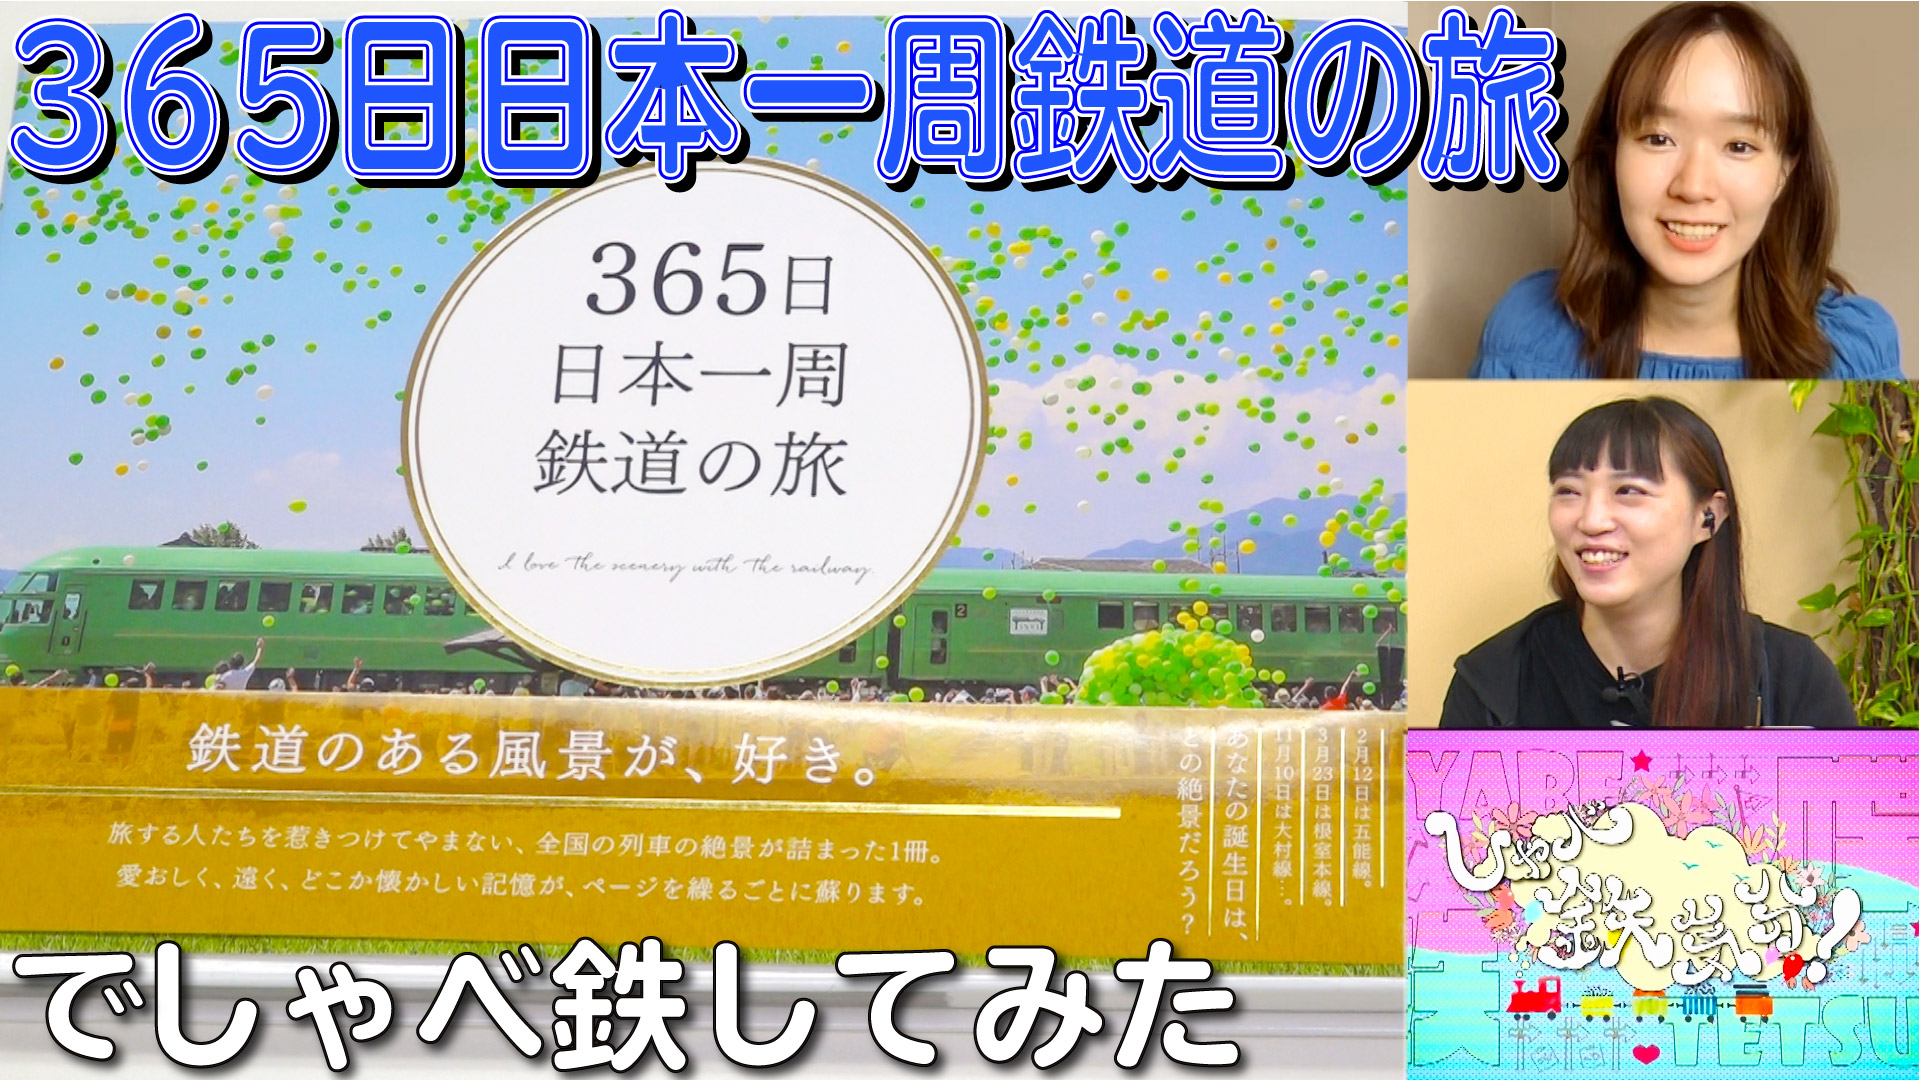 【youtube】書籍「365日日本一周鉄道の旅(365日絶景シリーズ)」を紹介!【9月6日生配信「しゃべ鉄気分!」part1】